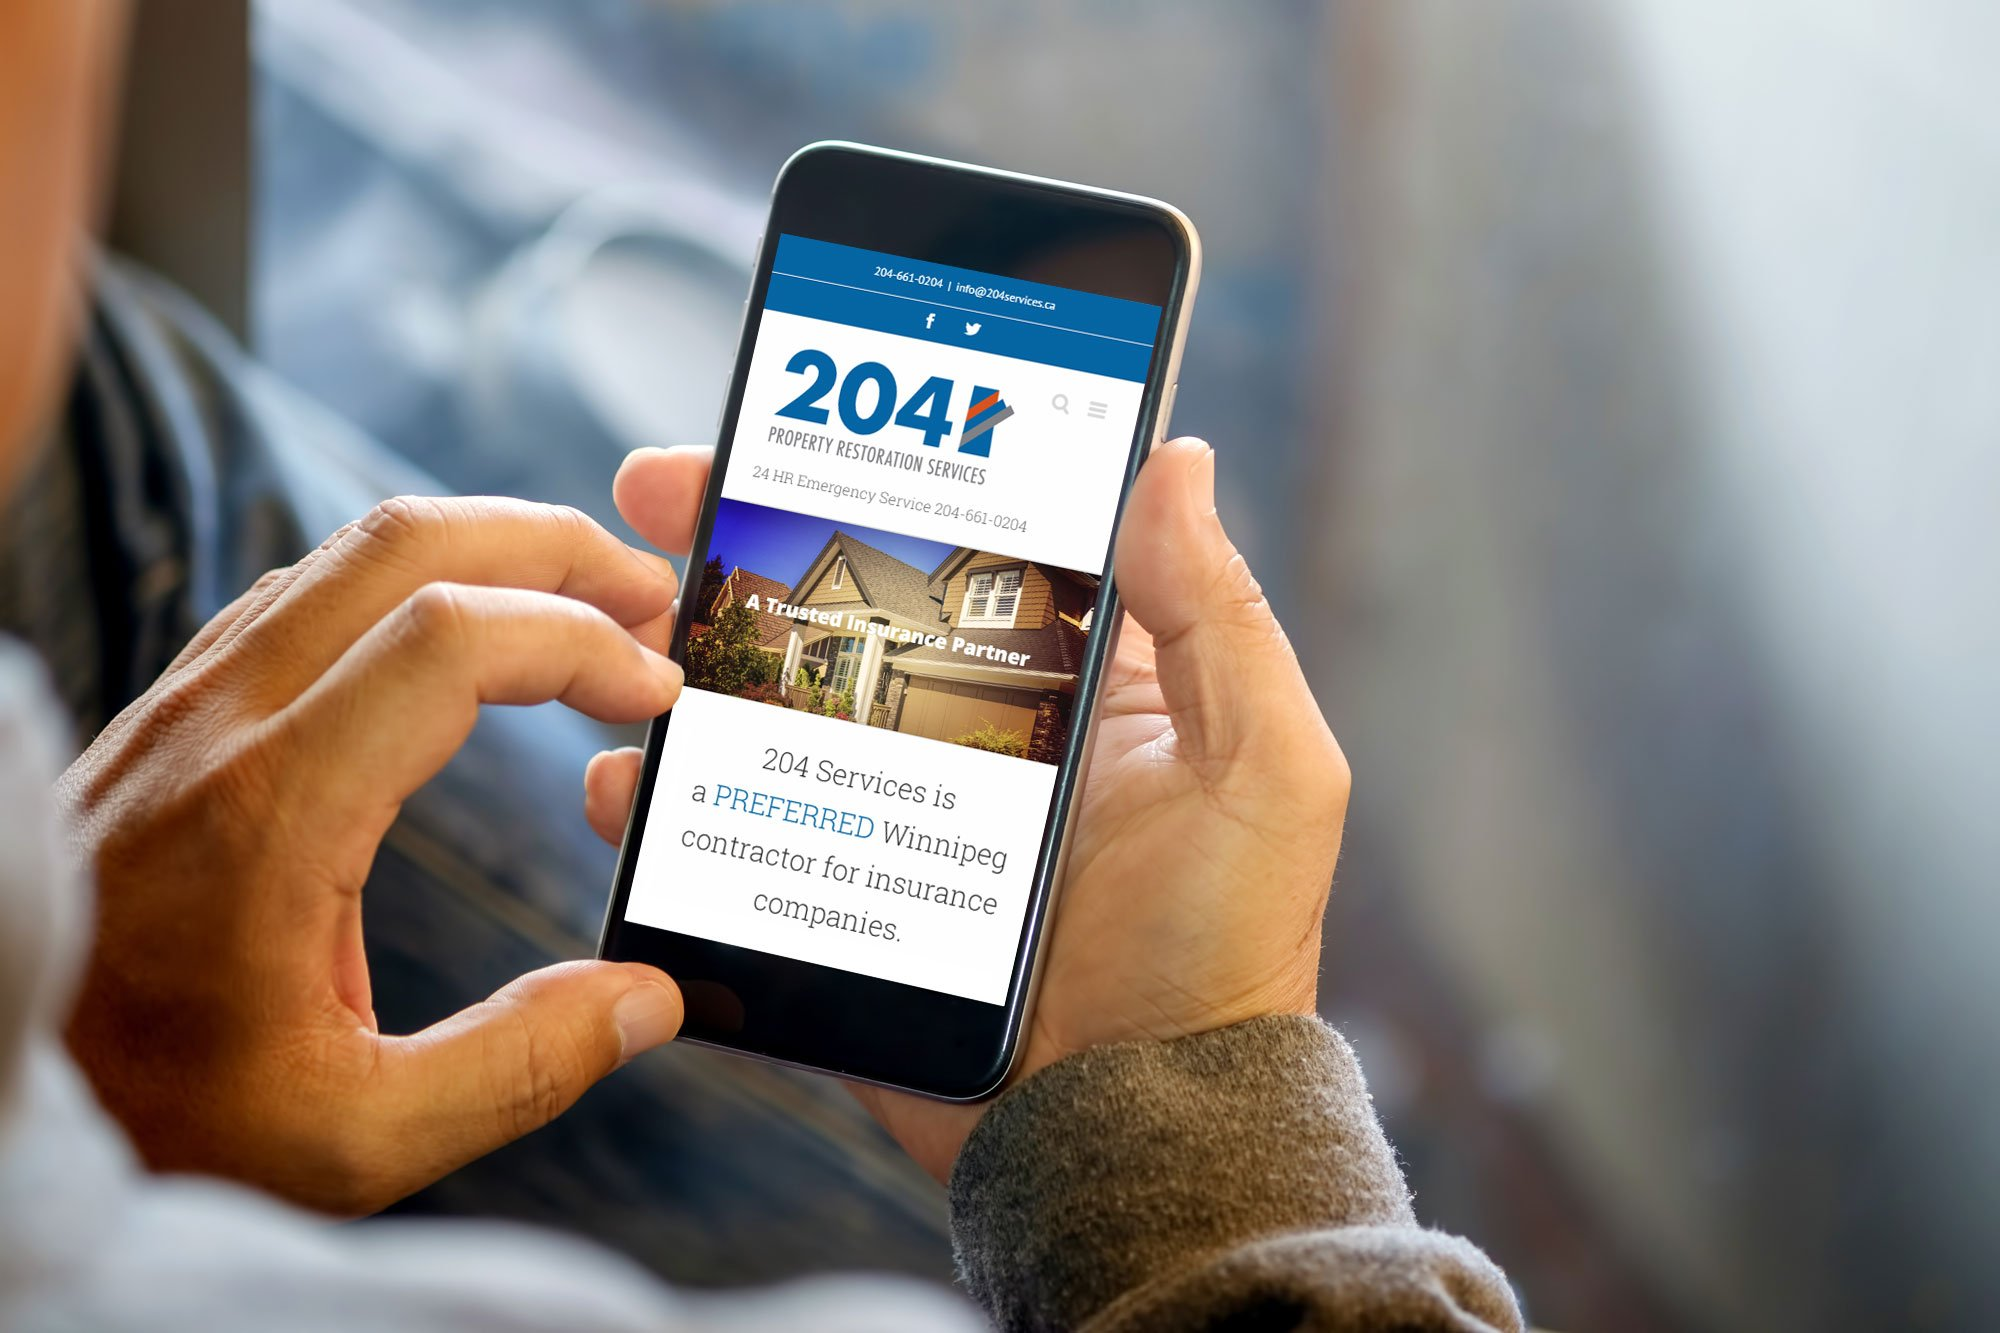 204 property restoration services homepage on a mobile device